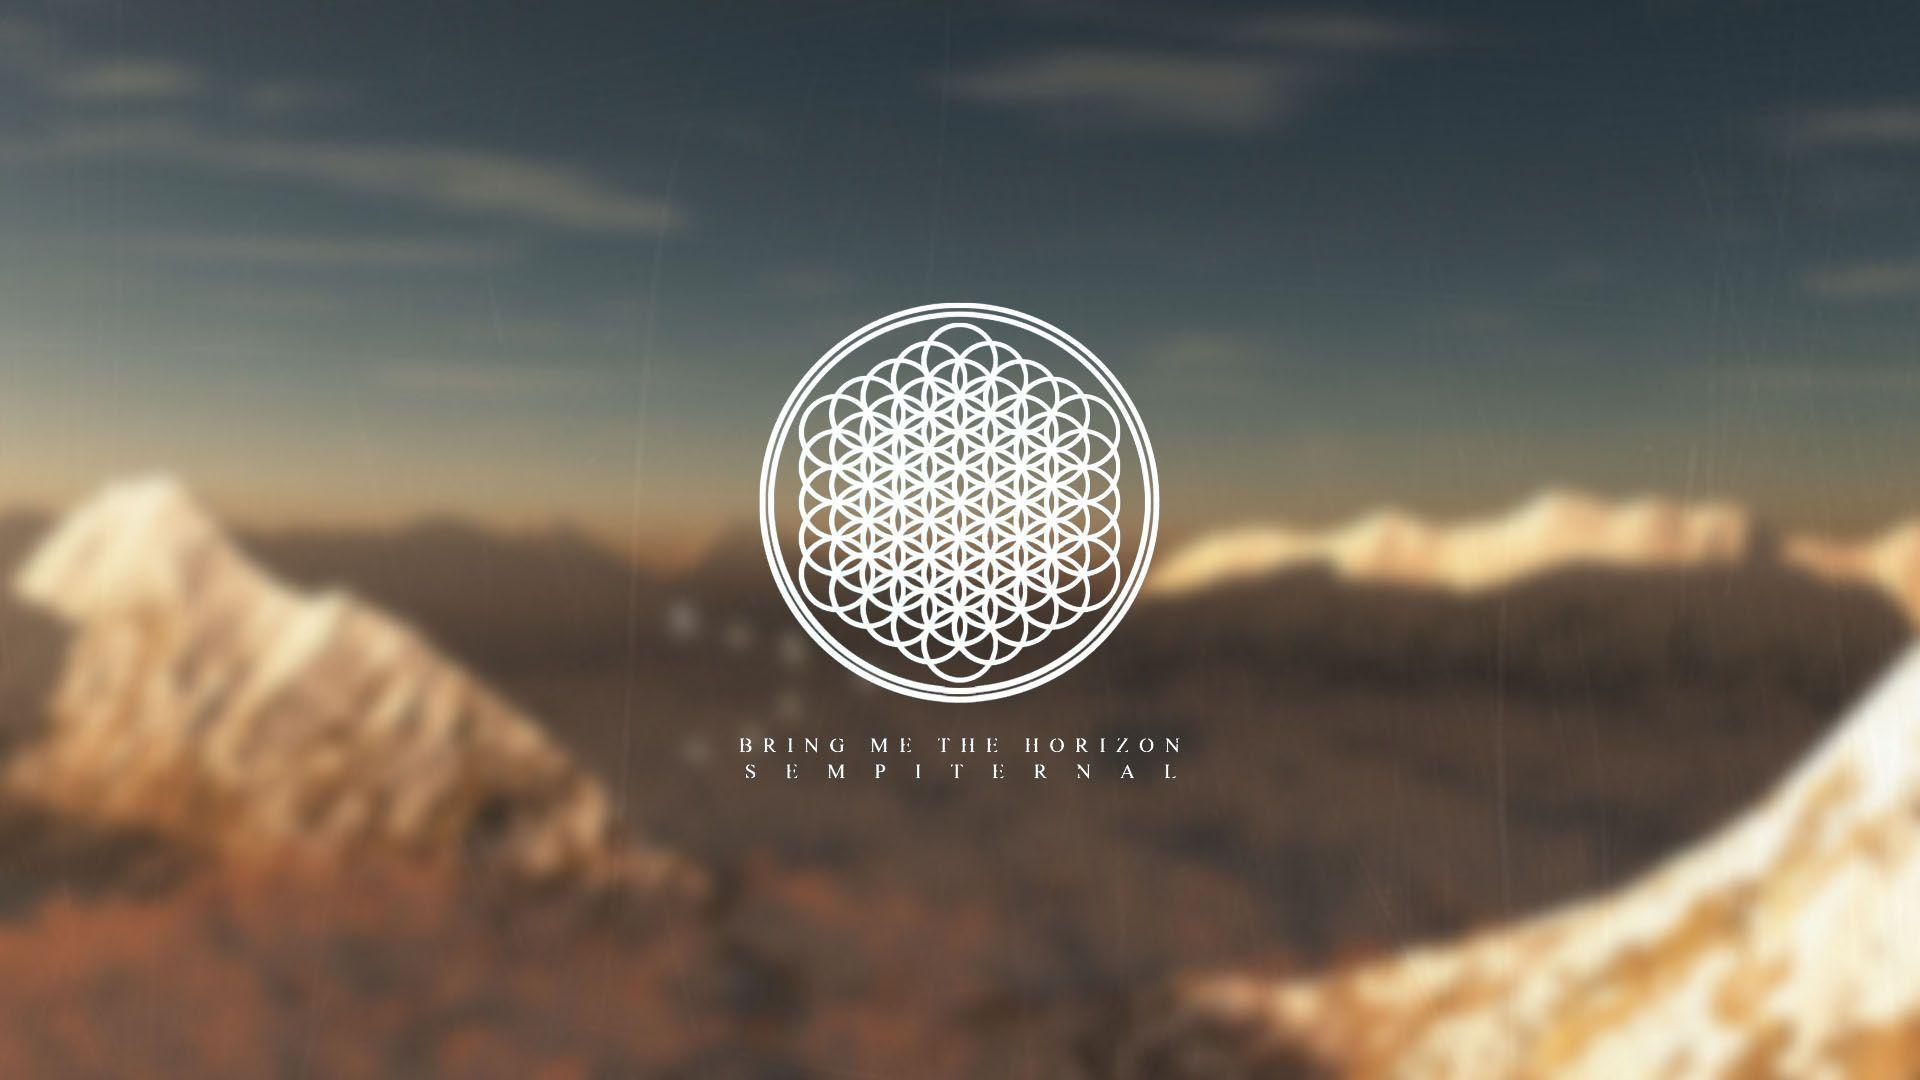 bmth wallpaper2 - photo #9